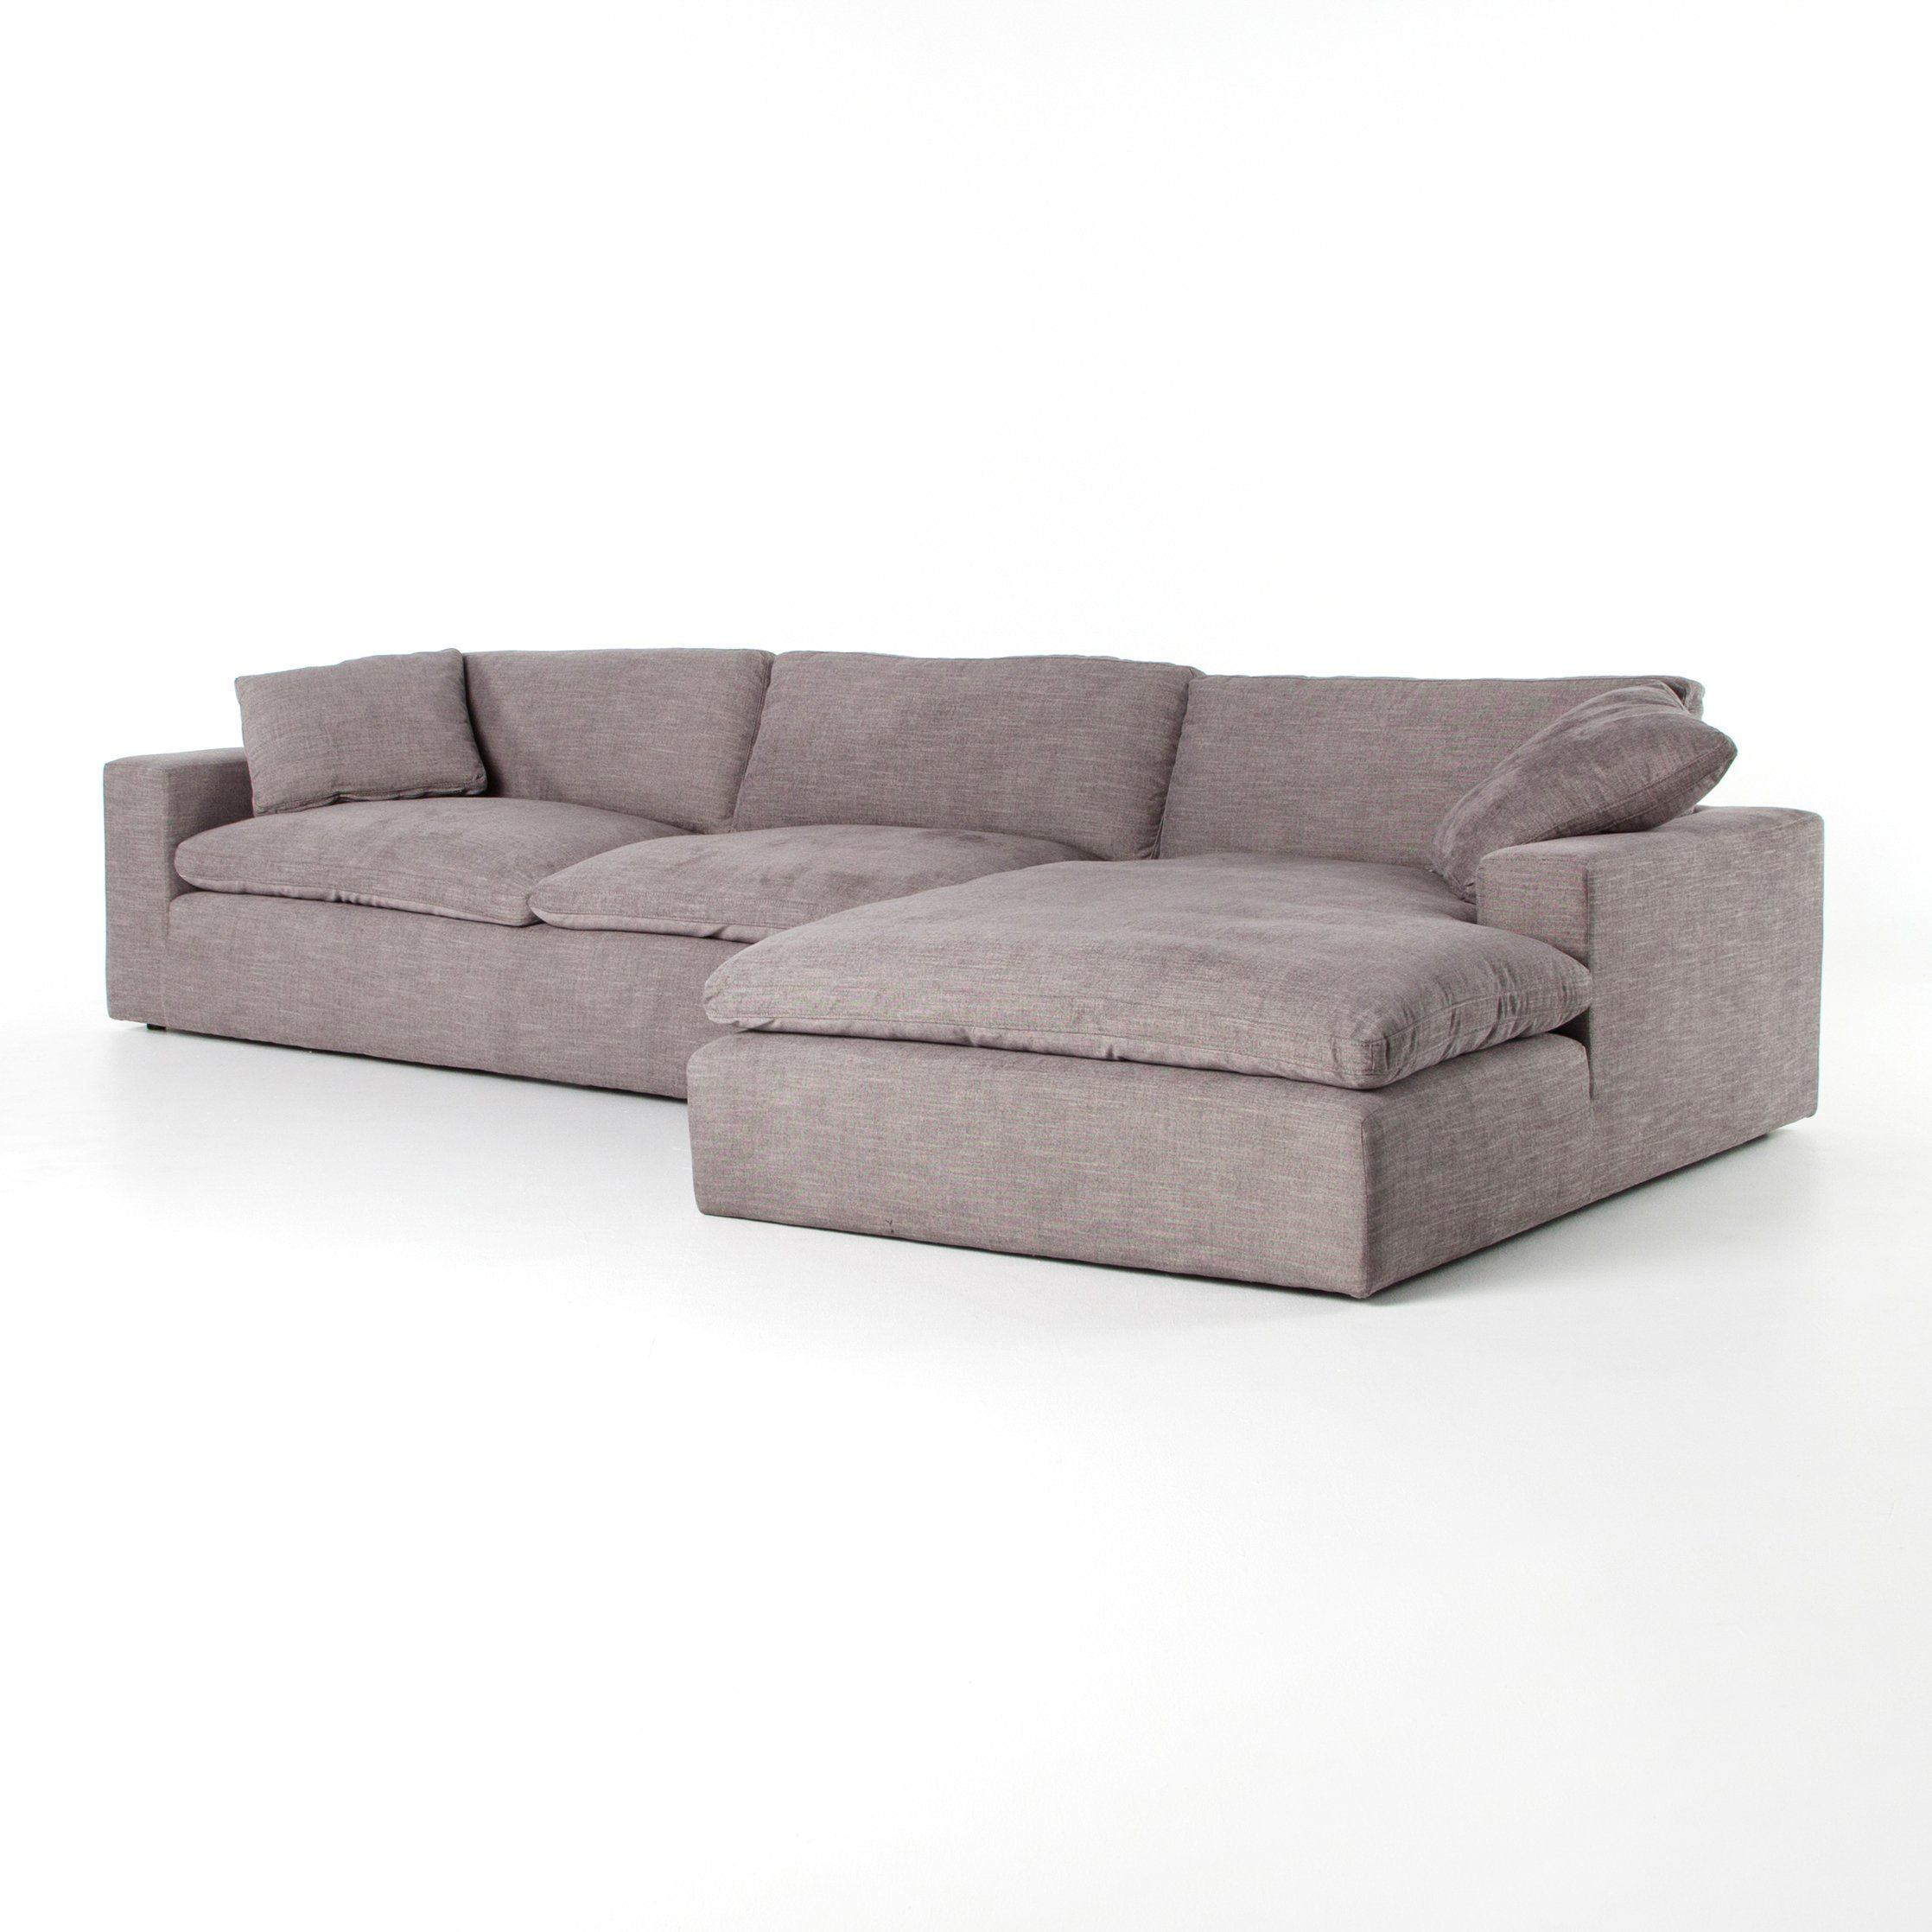 Plume Two Piece Sectional 106 2 Piece Sectional Sofa